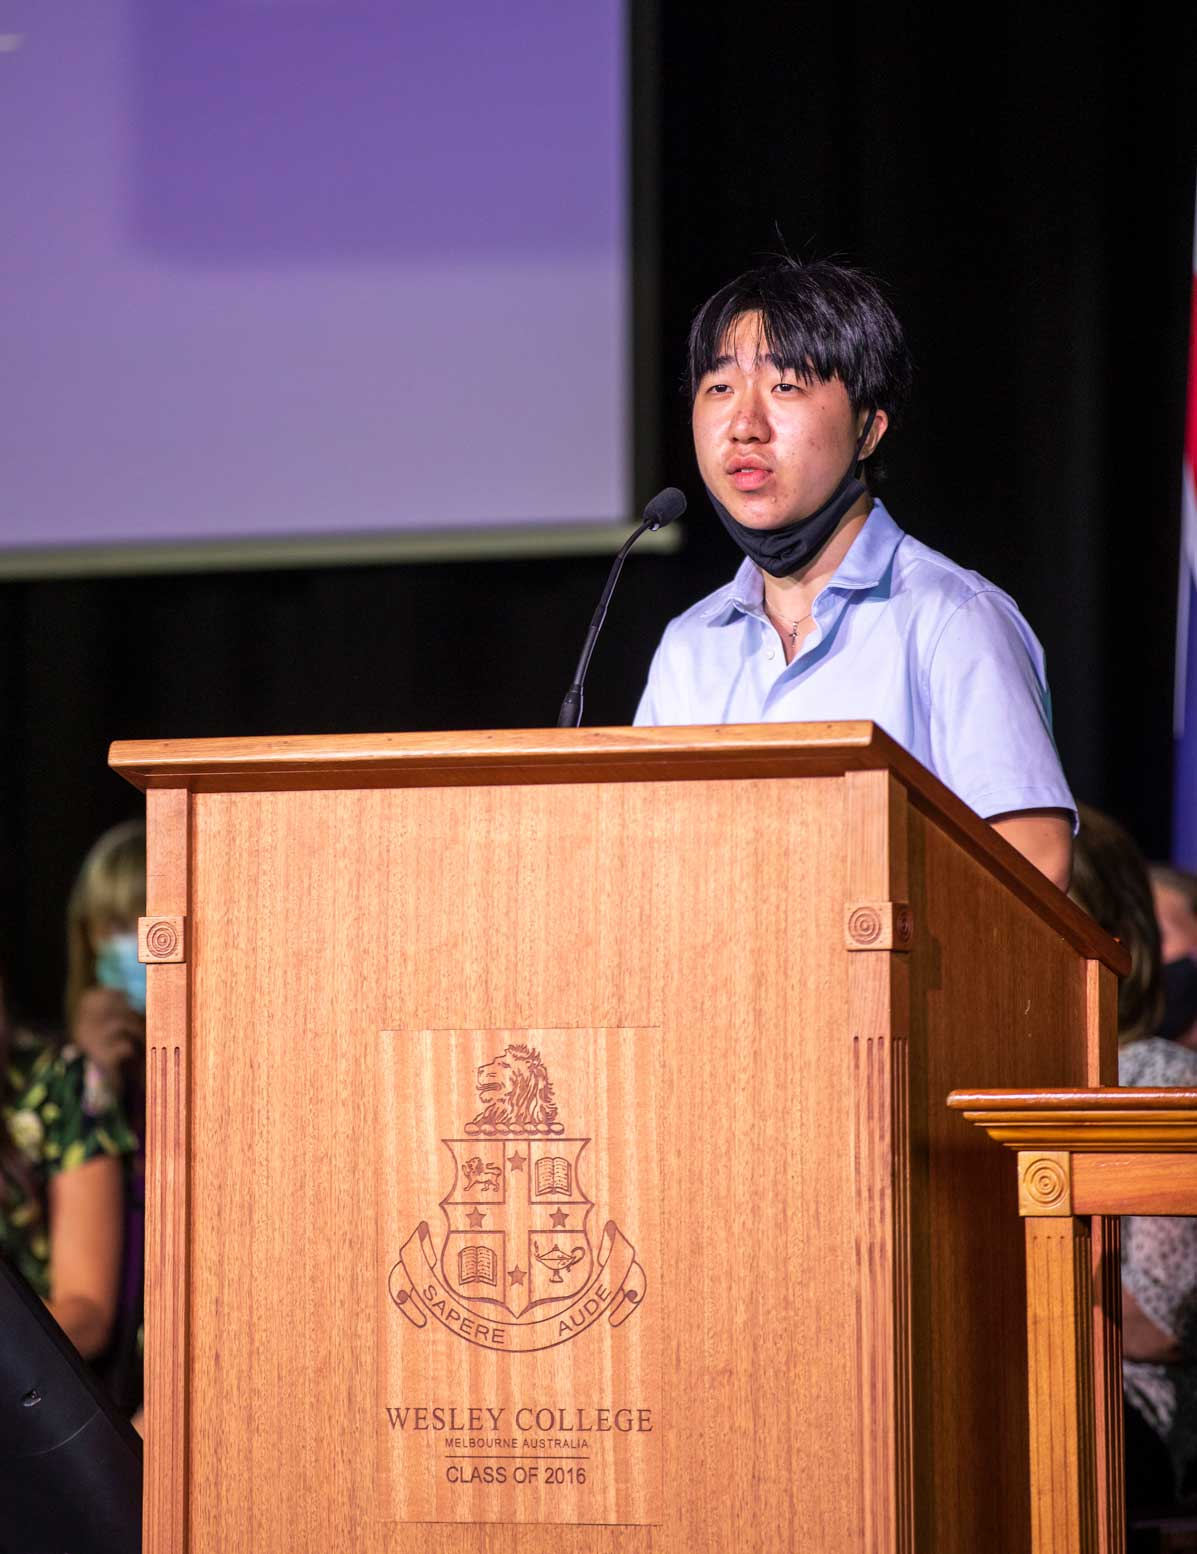 Kean Tan stands at the lectern giving the Scholar's Address at assembly